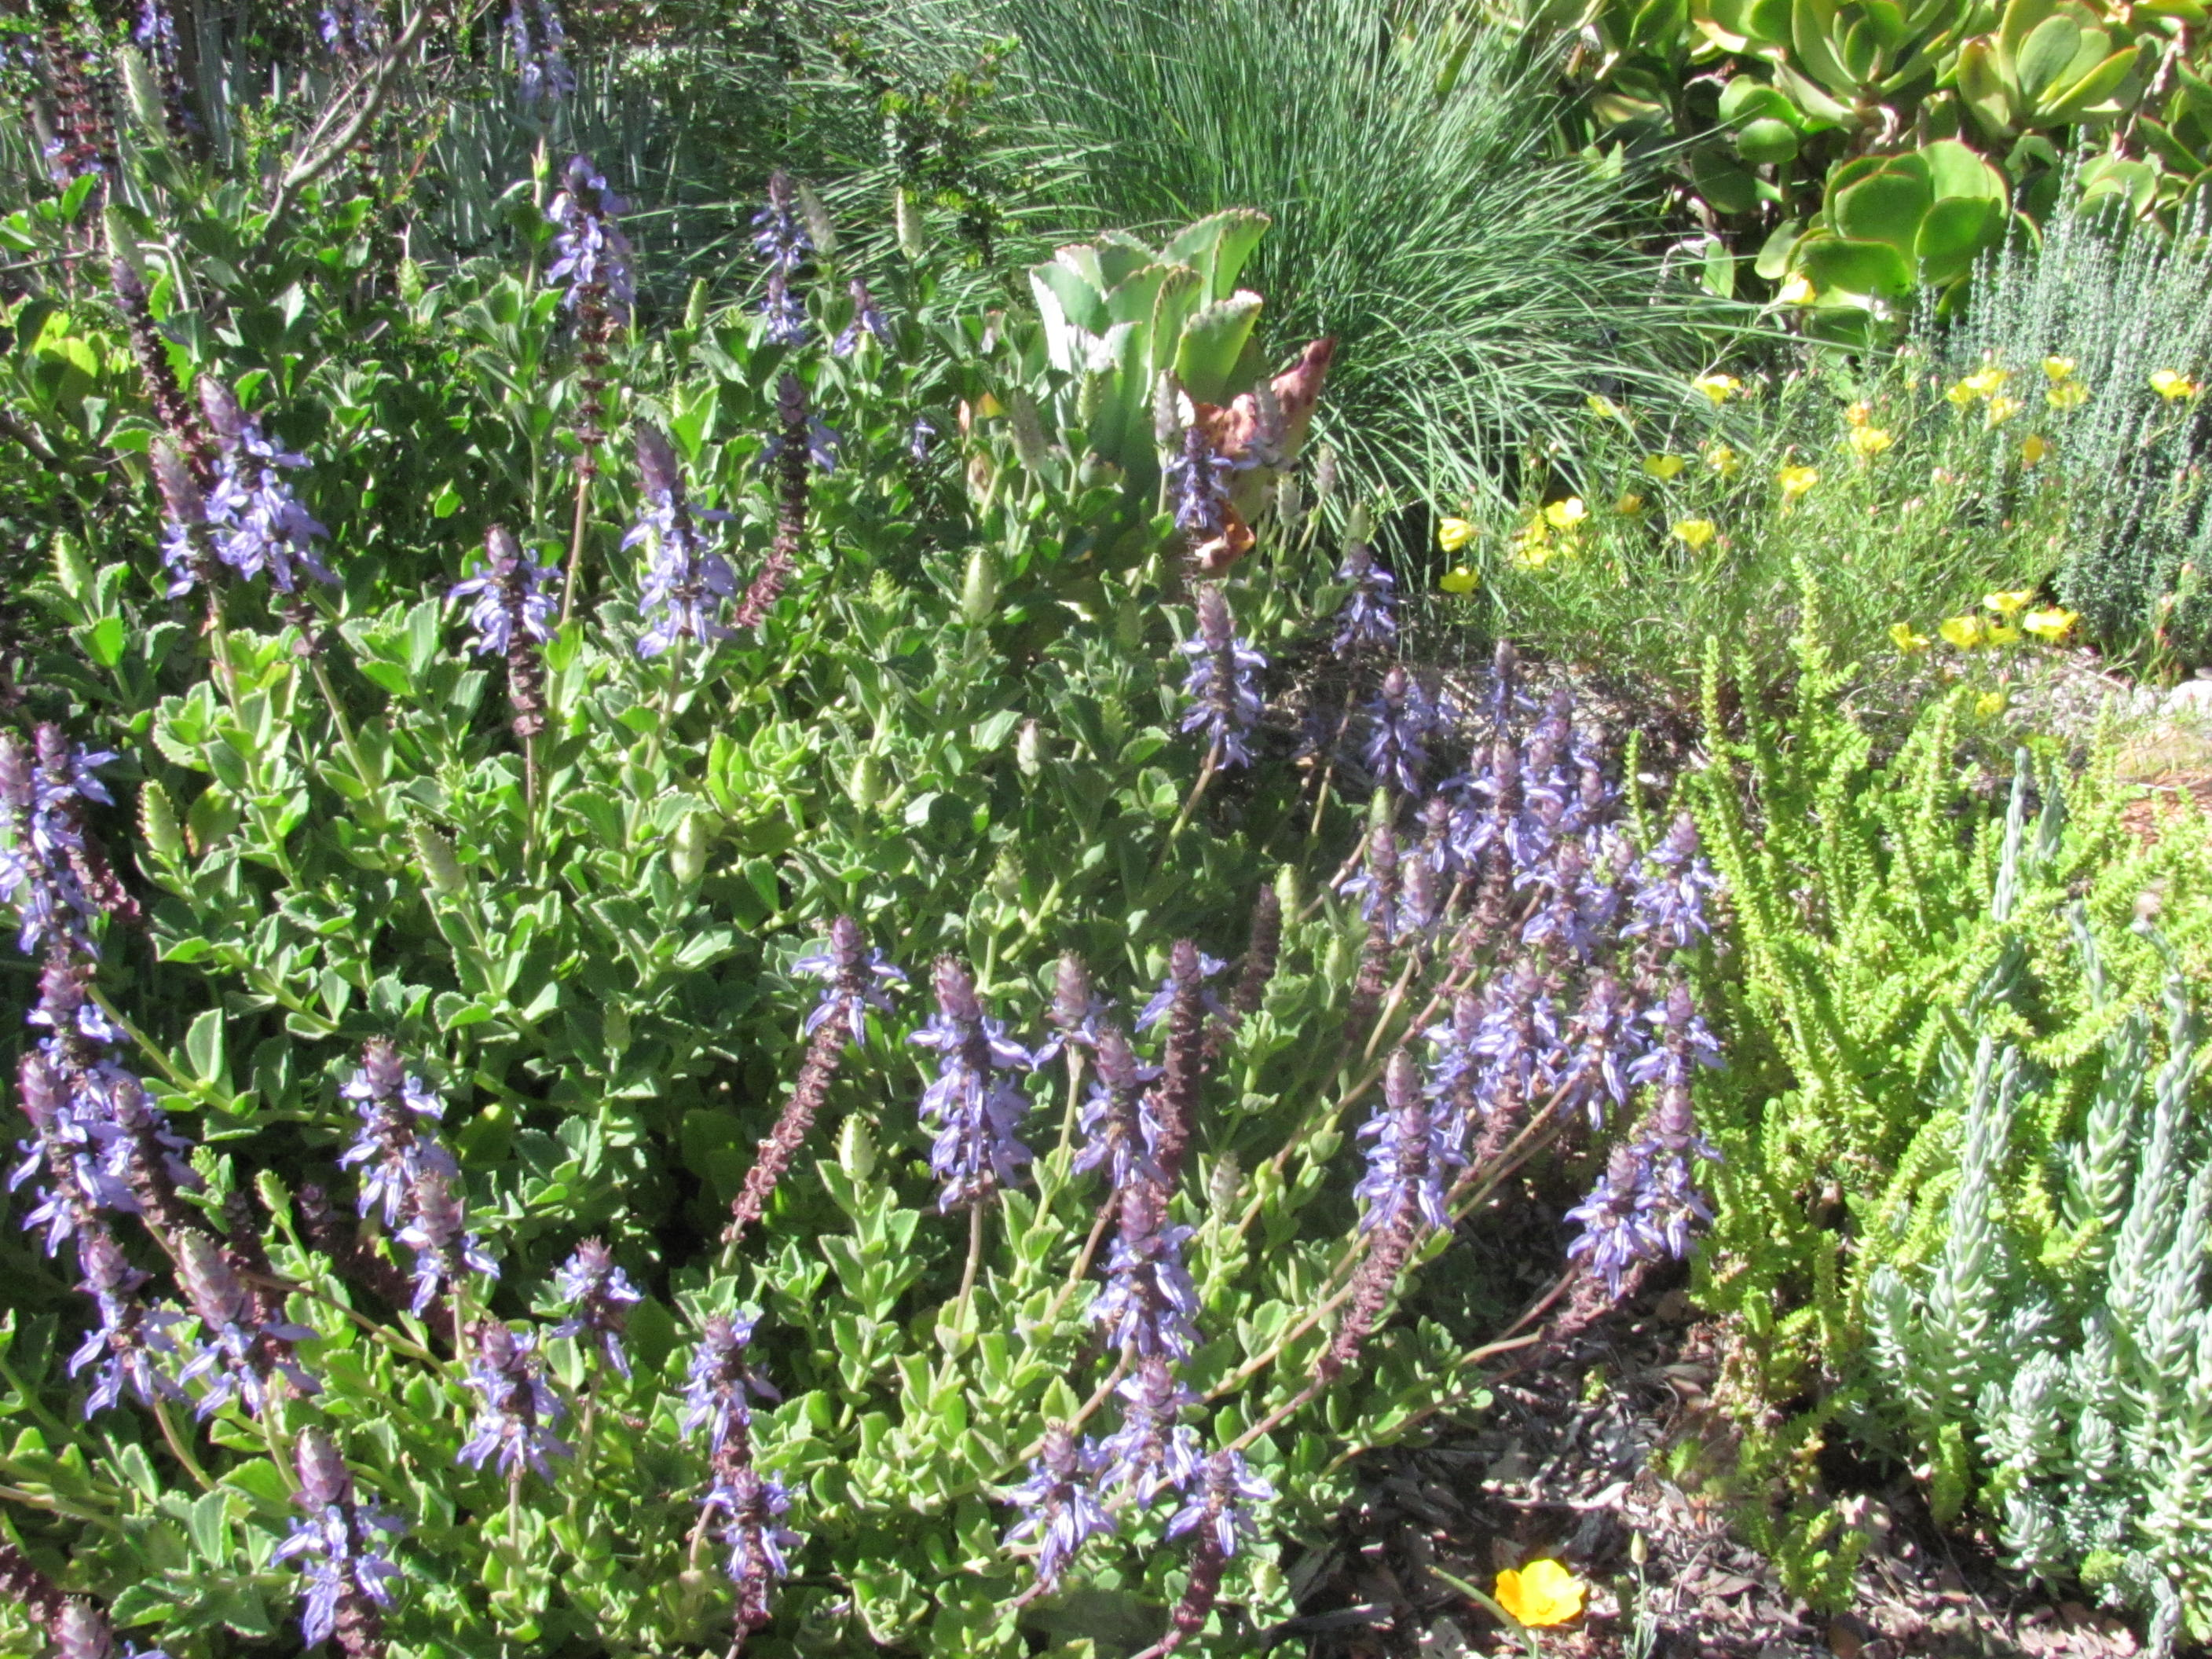 Drought tolerant plants the lobster flower another loveable perennial for the sustainable - Heat tolerant plants keeping gardens alive ...